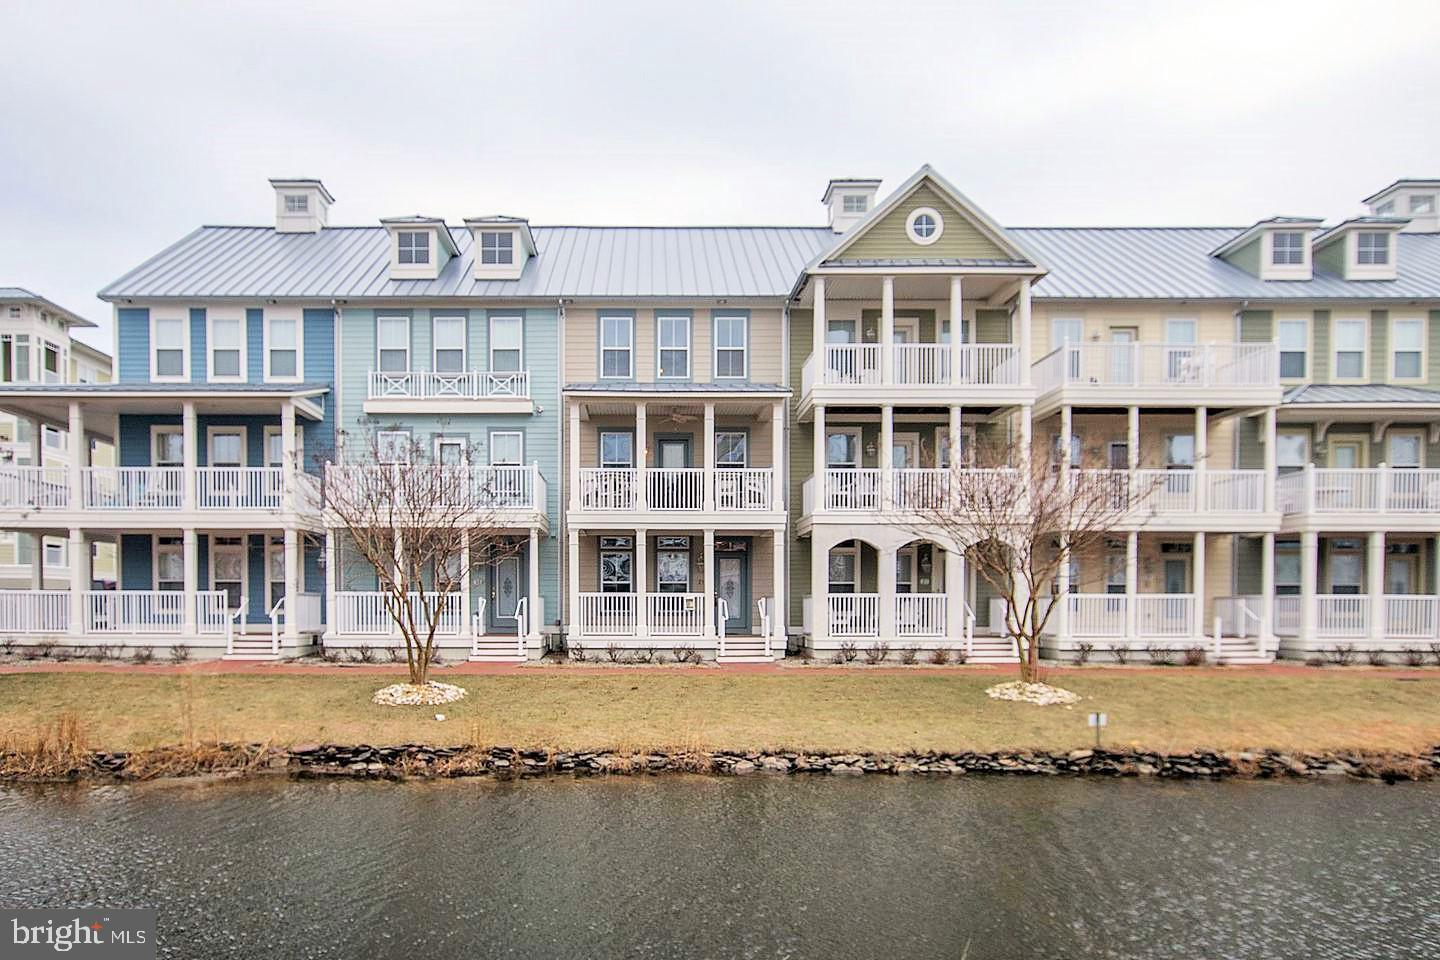 Gorgeous town home tucked away on a serene canal with a partial view of the bay to the north! Spacious open floor plan features a large, fully equipped kitchen, bonus morning room, two dining areas, soaking tub in the master bath, and so much more for your total enjoyment. There is even an outside shower for after a fun day in the sand! Just a short walk to the bay front beaches located on the north side of the island, and less than a 5 minute walk to the indoor/outdoor pools. Sunset Island amenities also include a clubhouse, fitness center, fishing pier, private beaches & walking trails, 24hr. security, interactive fountains, and much more. Sold fully furnished, make it your vacation home or investment property has great rental potential!